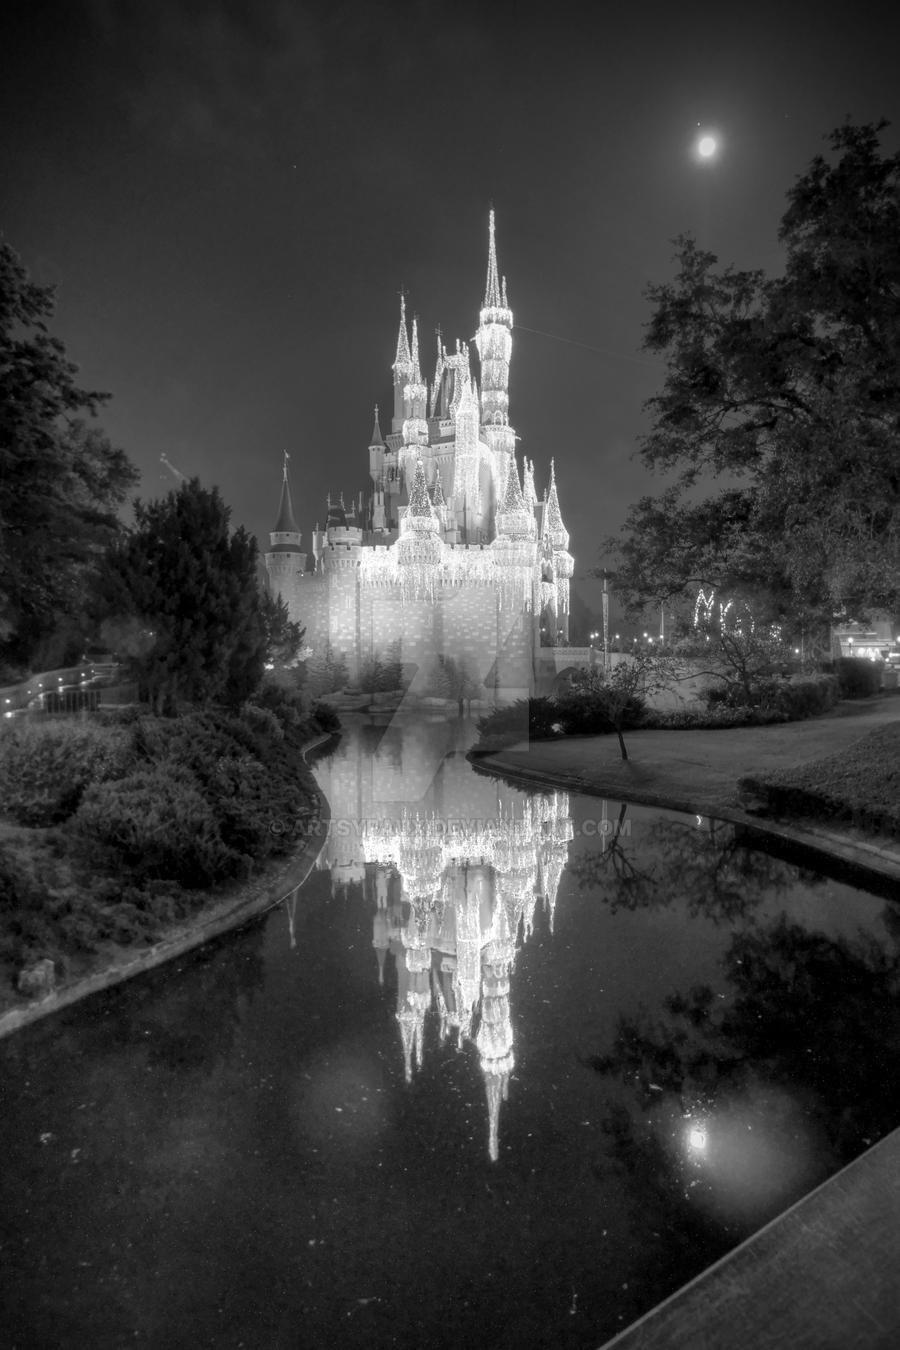 Castle Reflection in Black and White